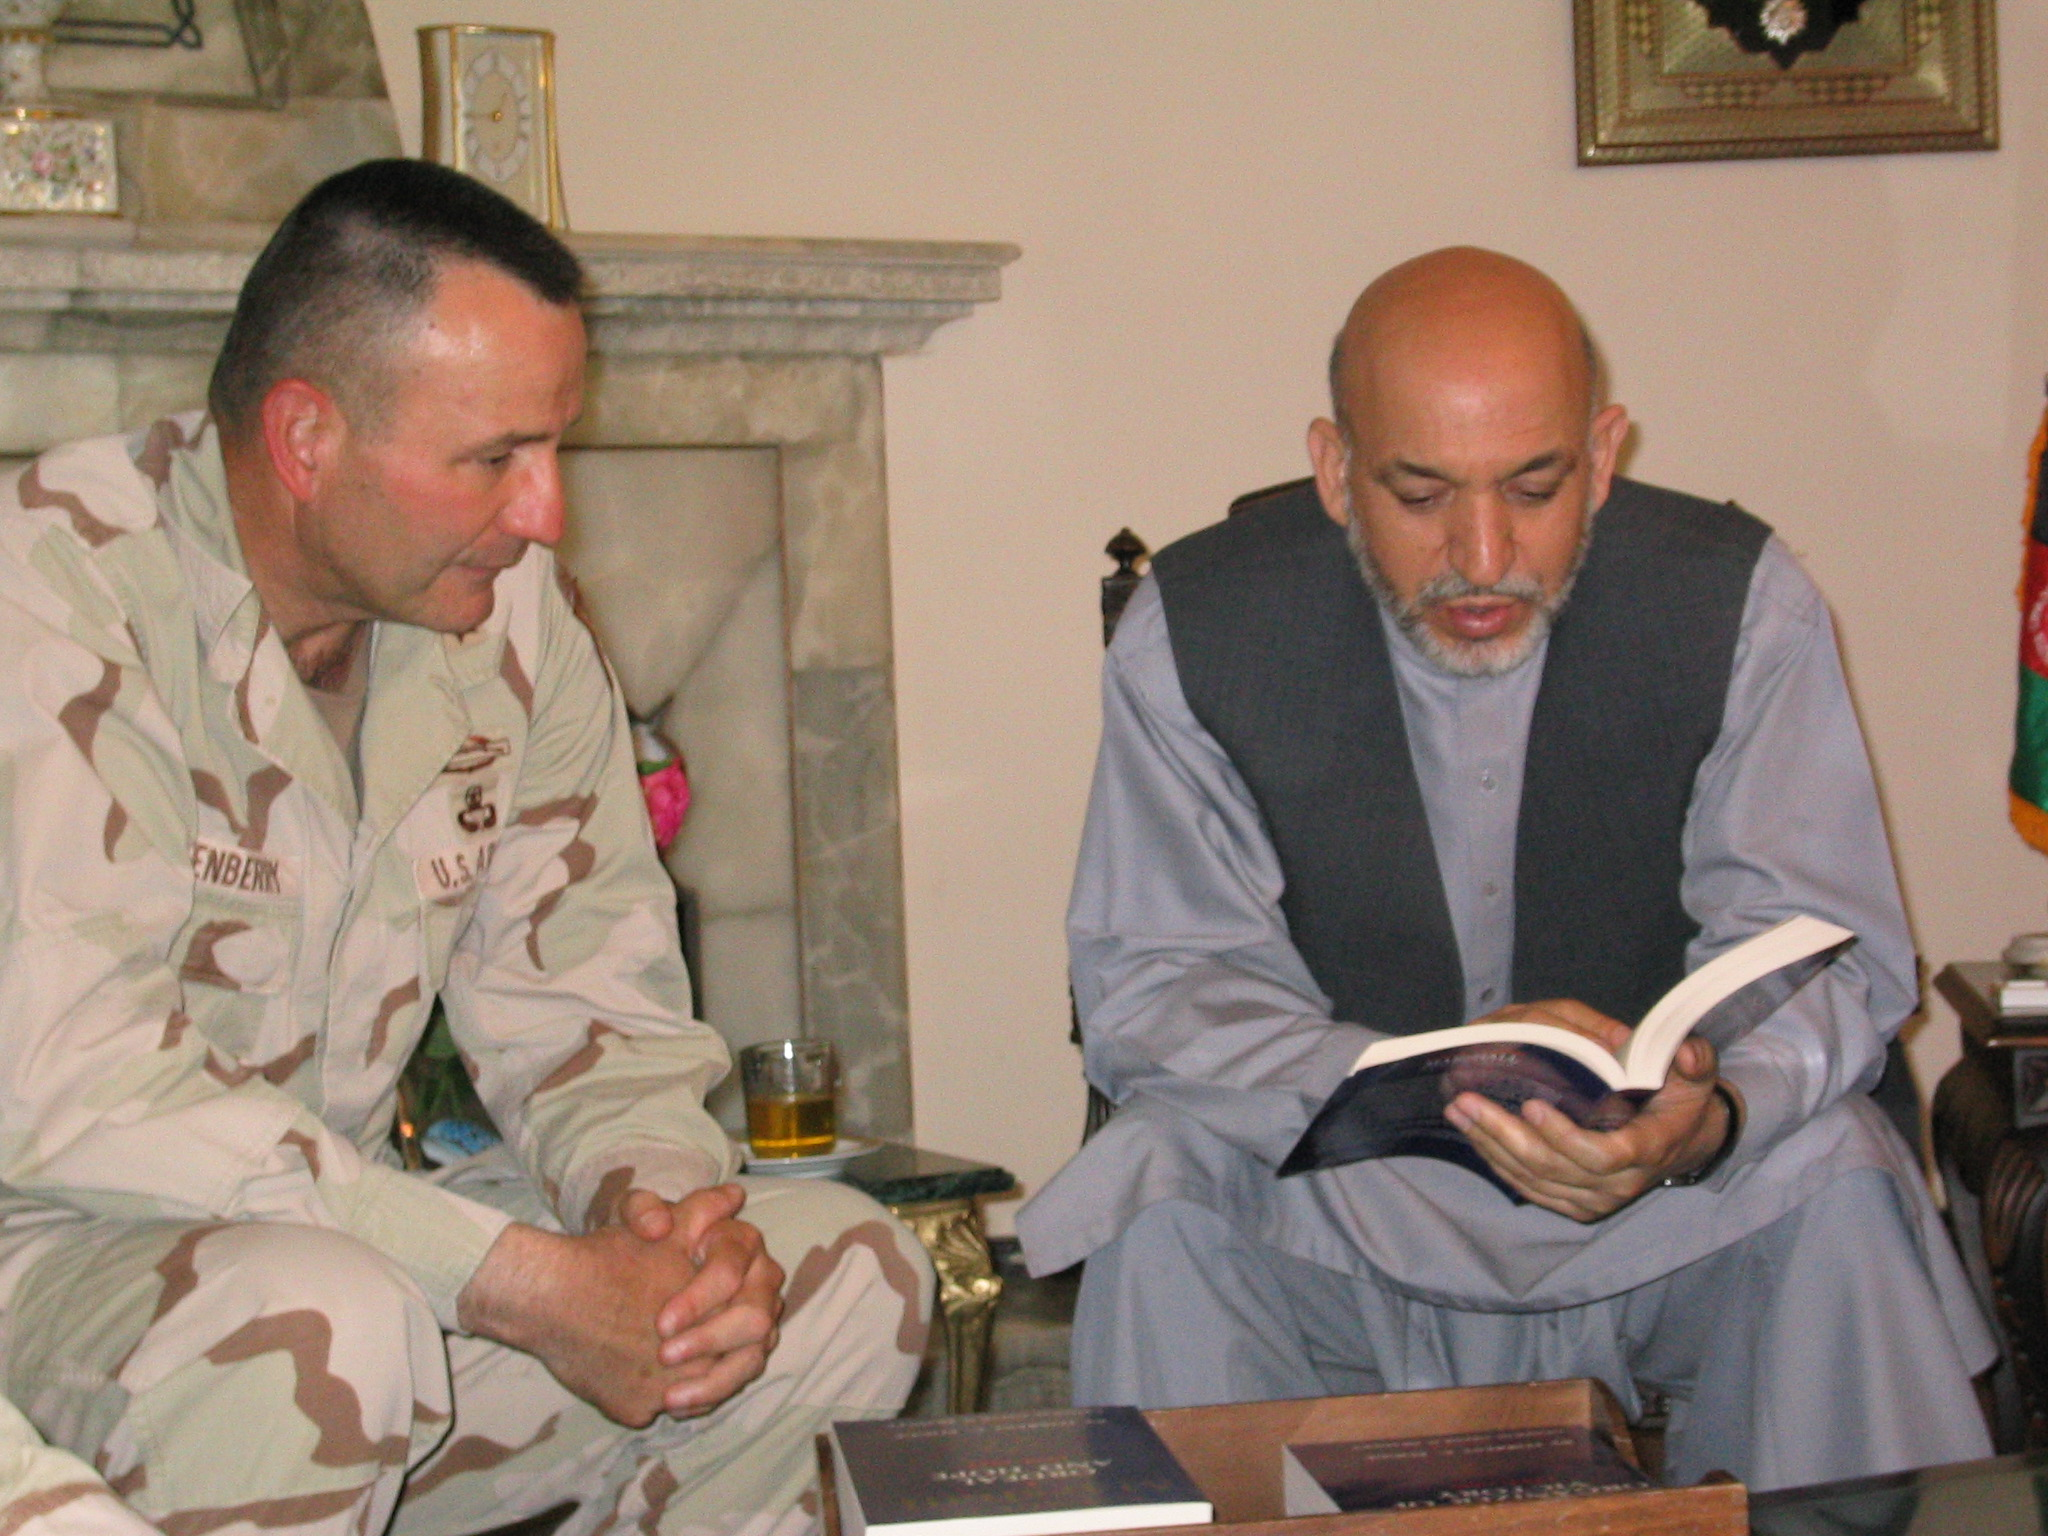 Afghan President Karzai Hamid: biography, activities and interesting facts 37